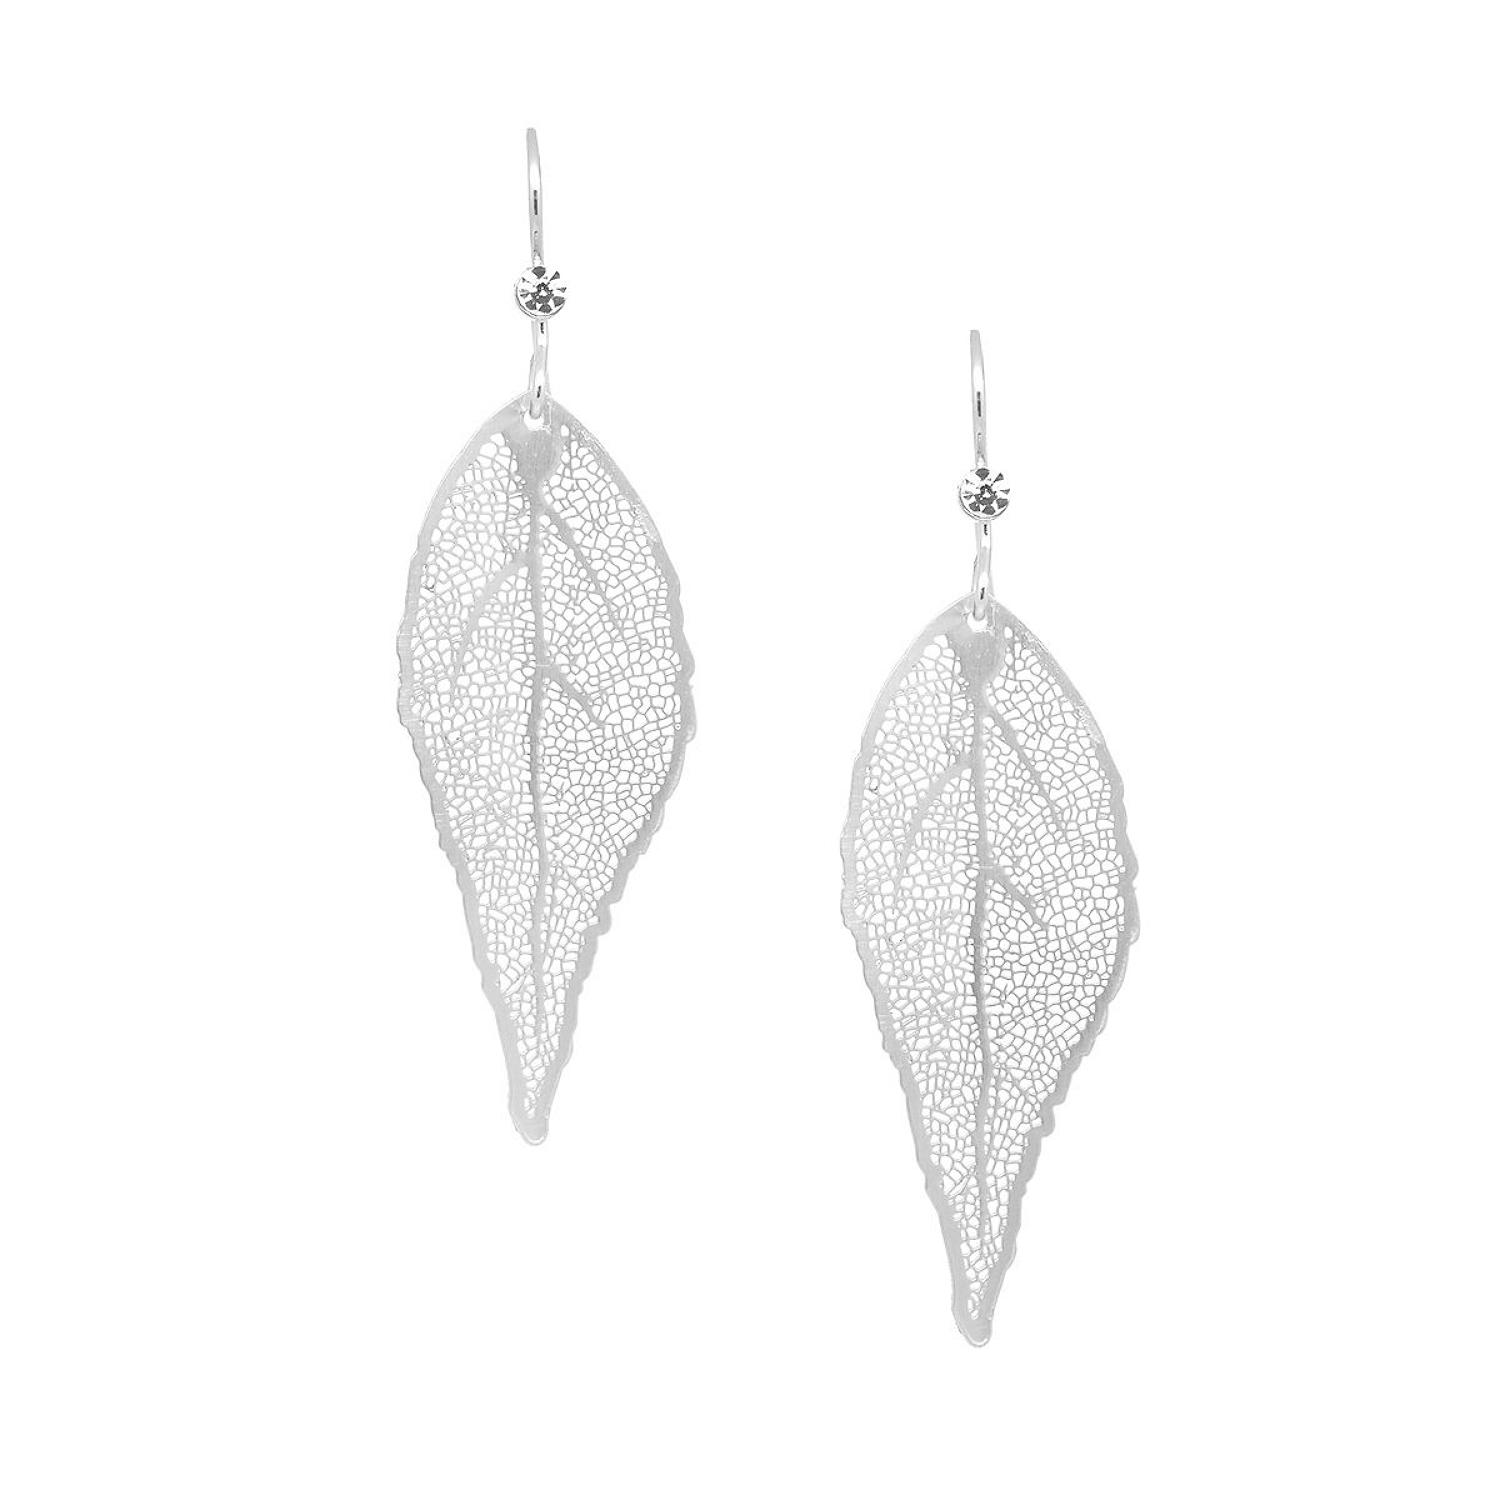 White Leaf - Silver leaf & crystal earrings